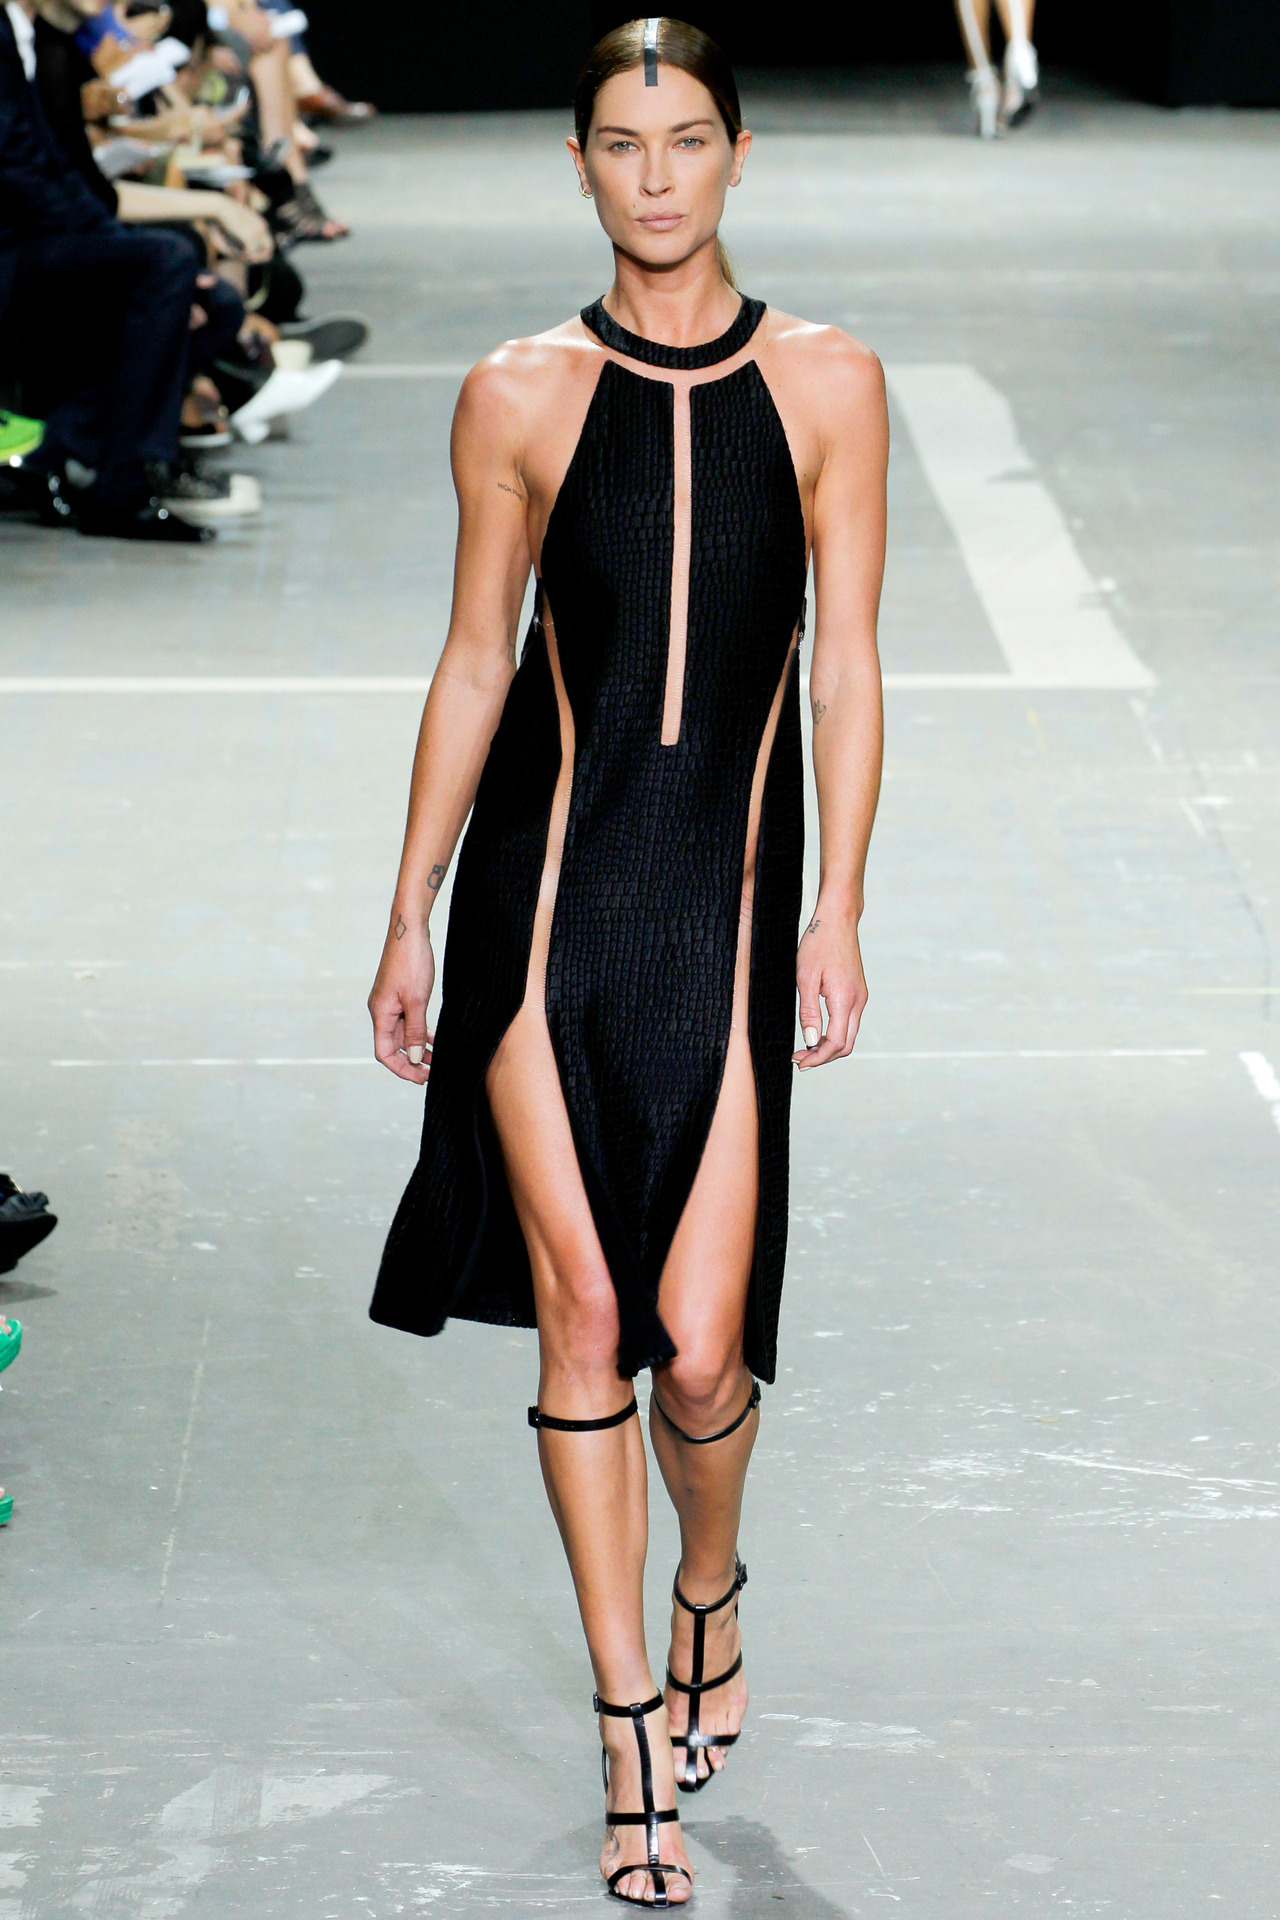 vogue:  Alexander Wang Spring 2013Photo: Monica Feudi/GoRunway.comGo to Vogue.com for the full collection and review.